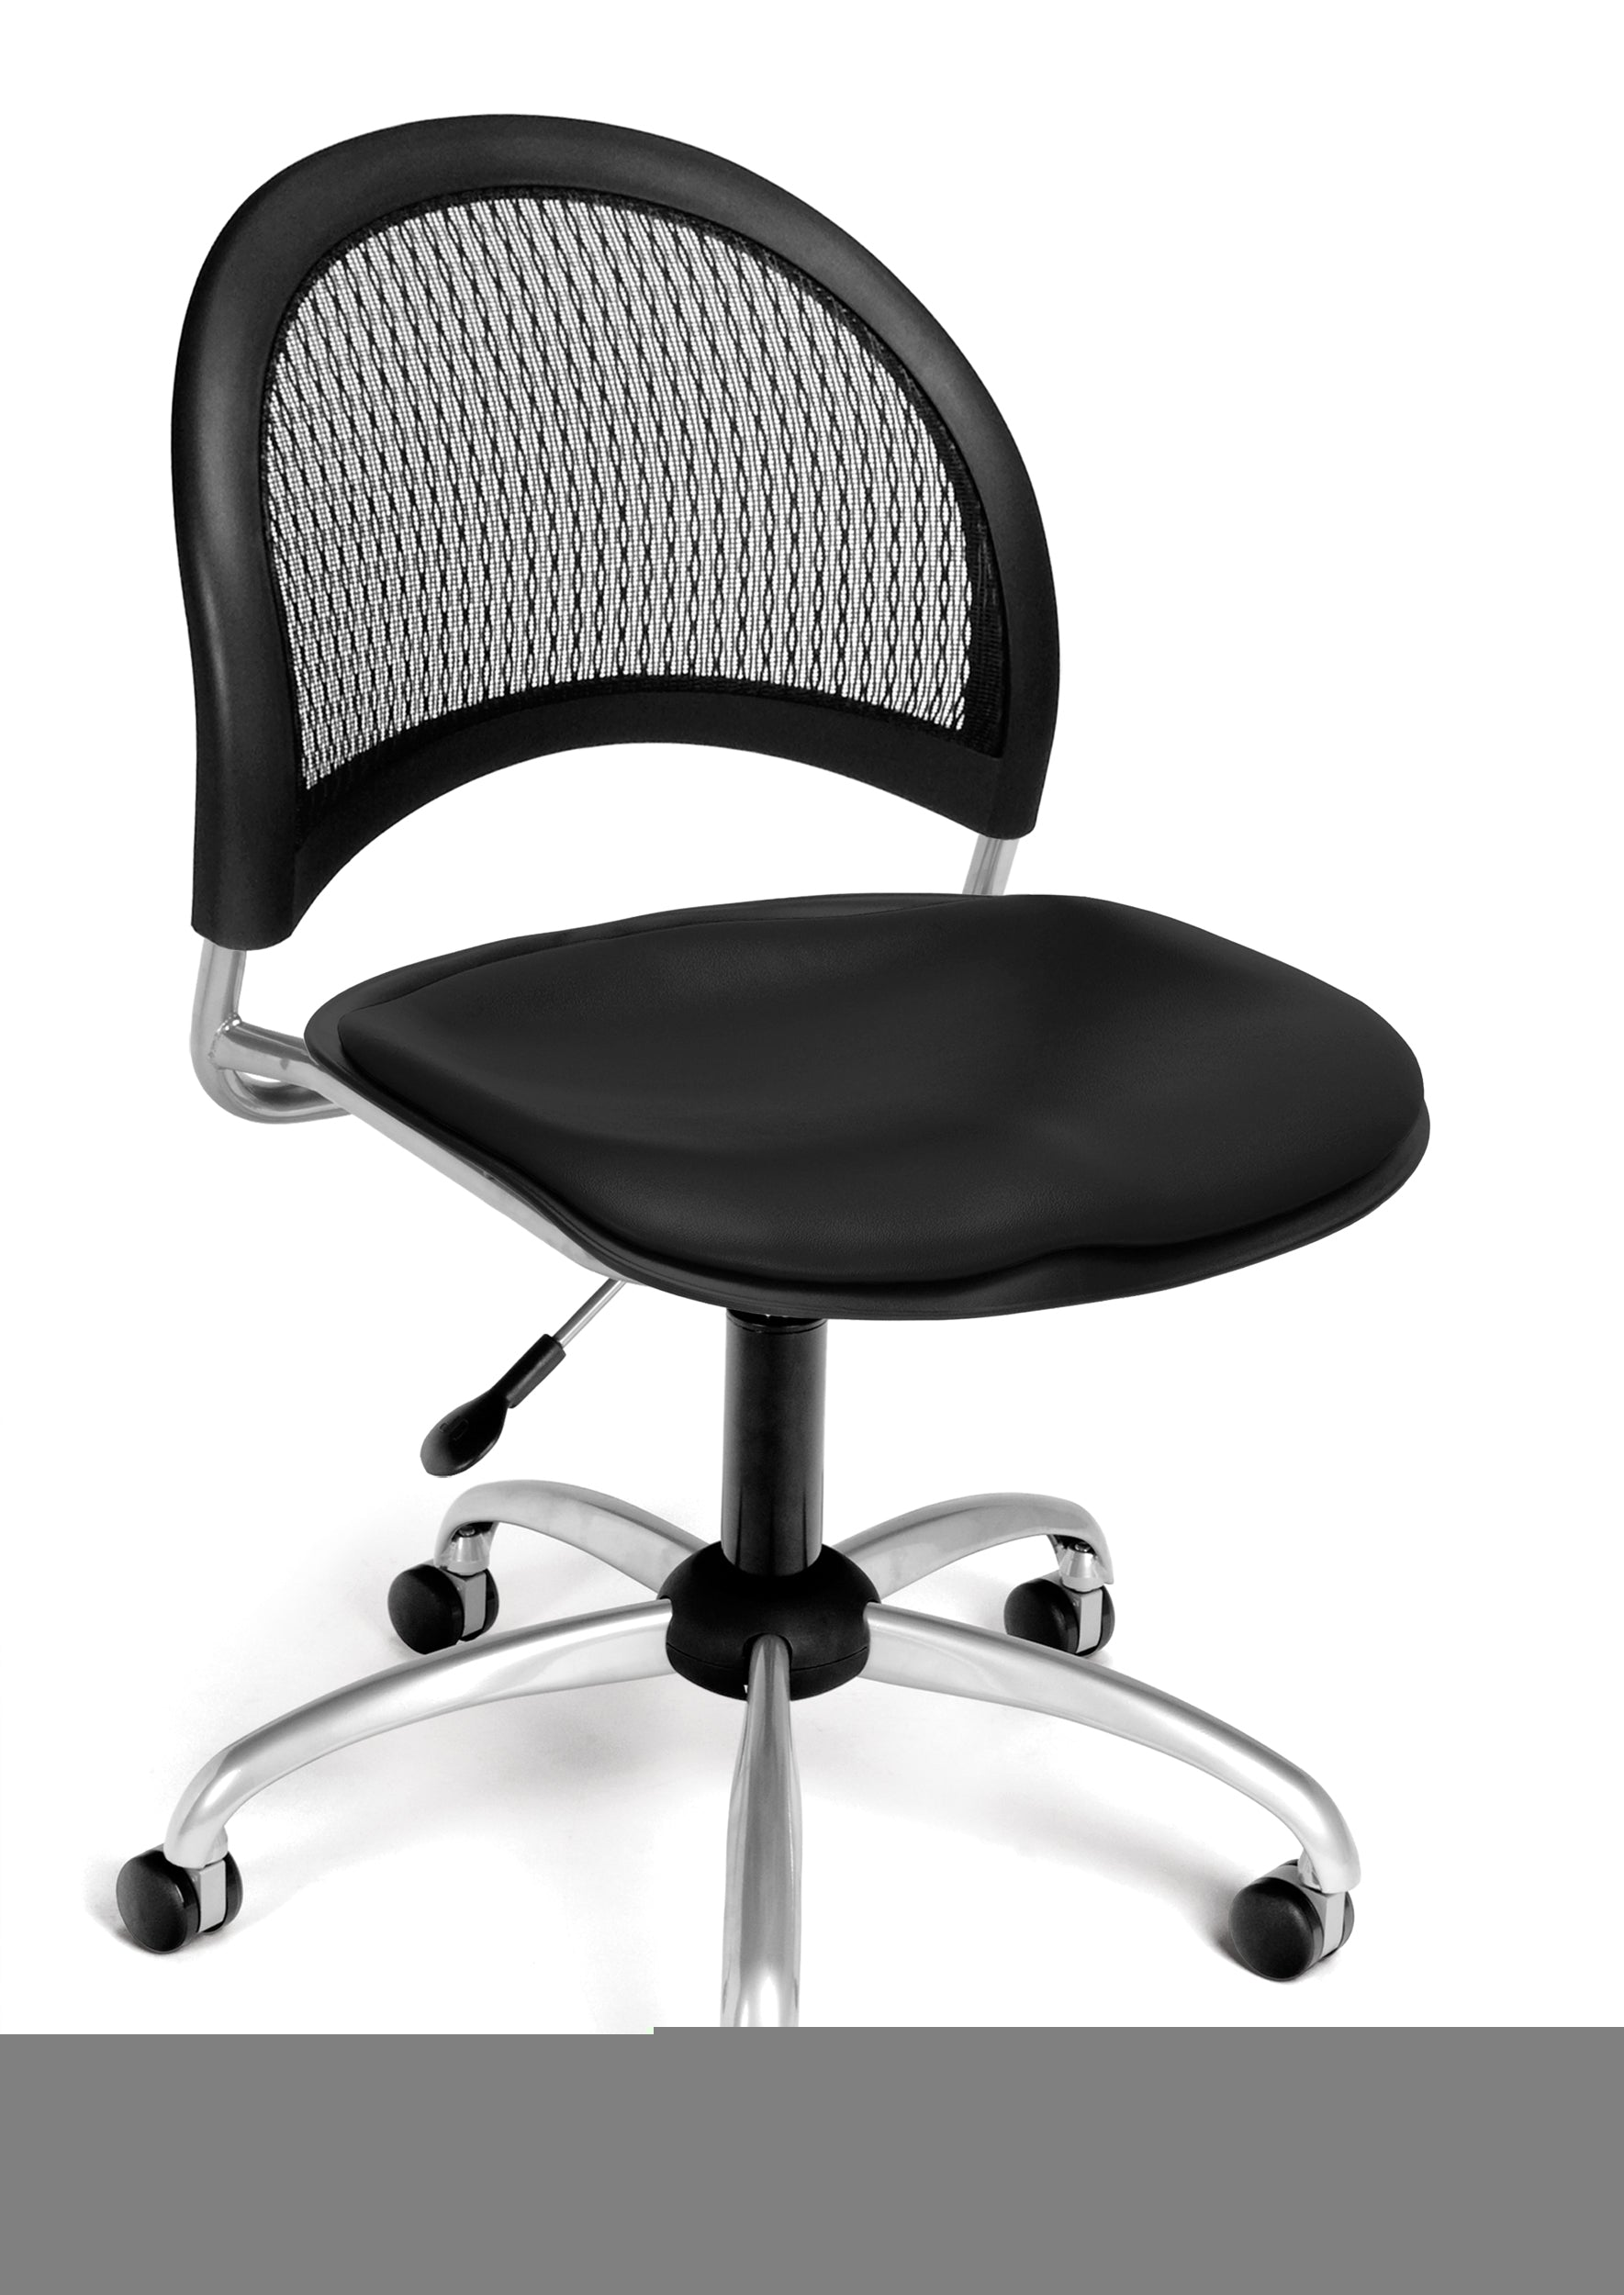 Ofminc Model 336-VAM Moon Series Armless Vinyl Swivel Chair